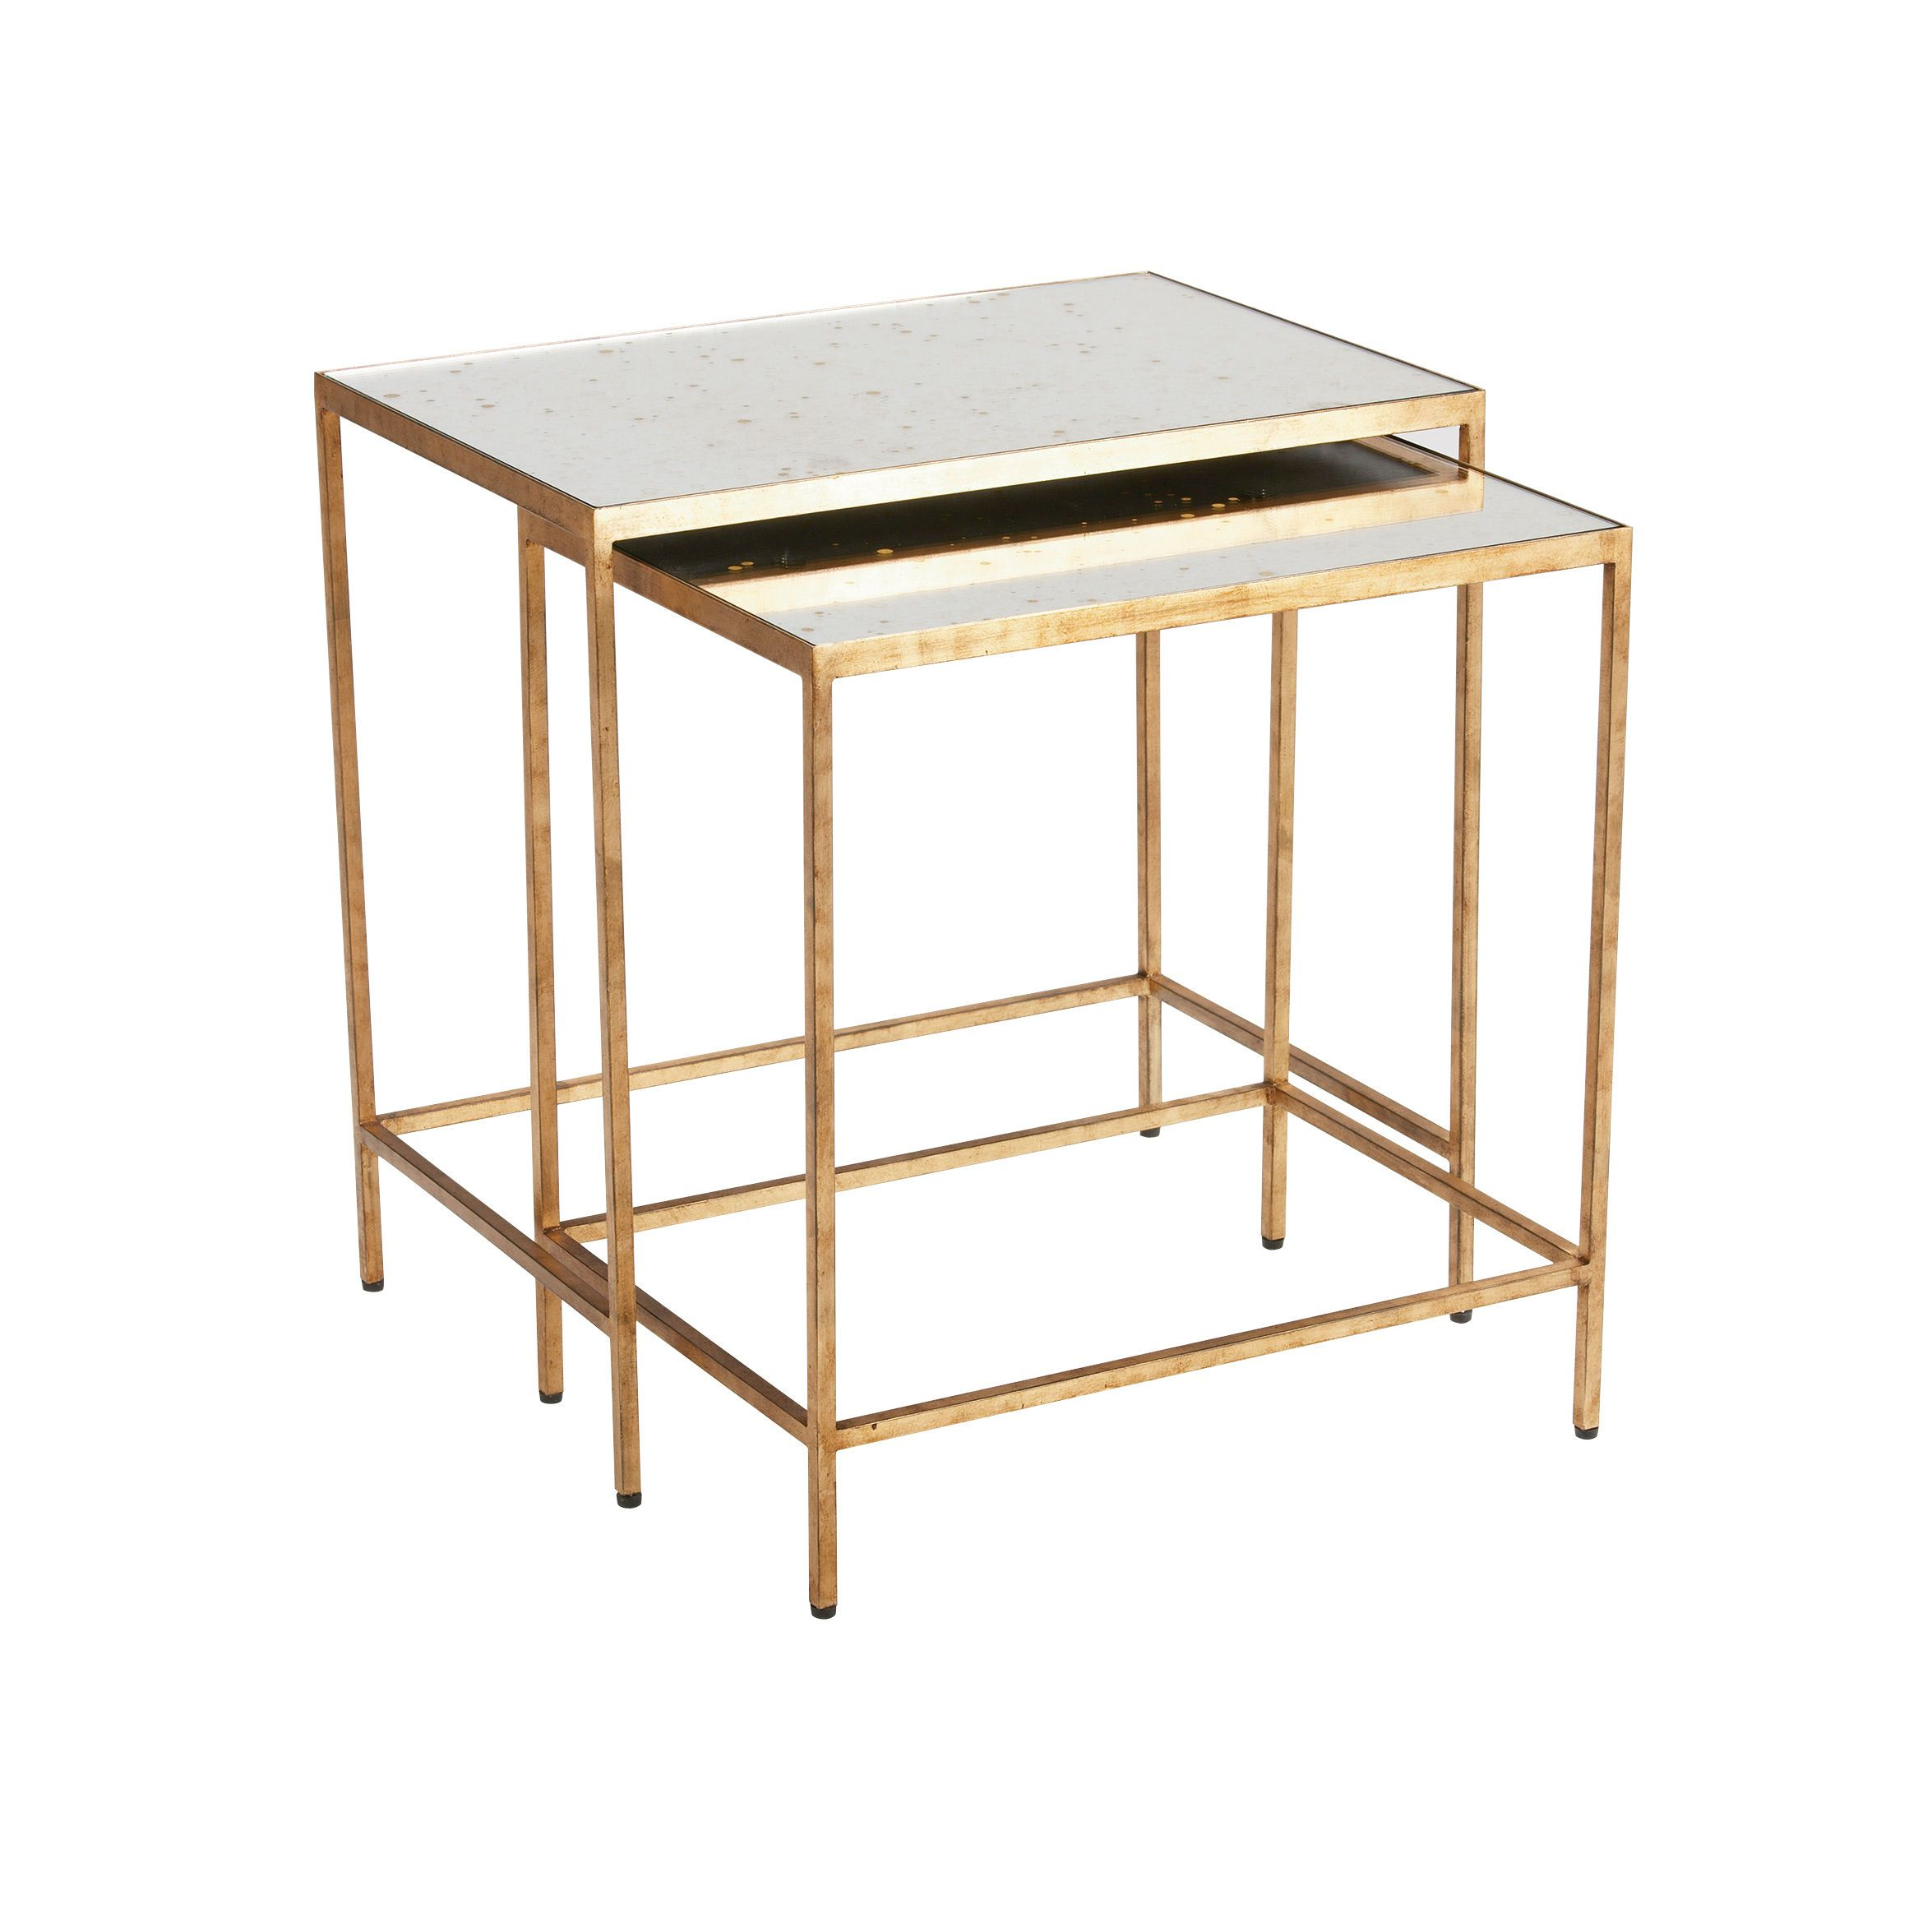 Zachary Nesting End Tables - Ethan Allen US. Mirrored end ...